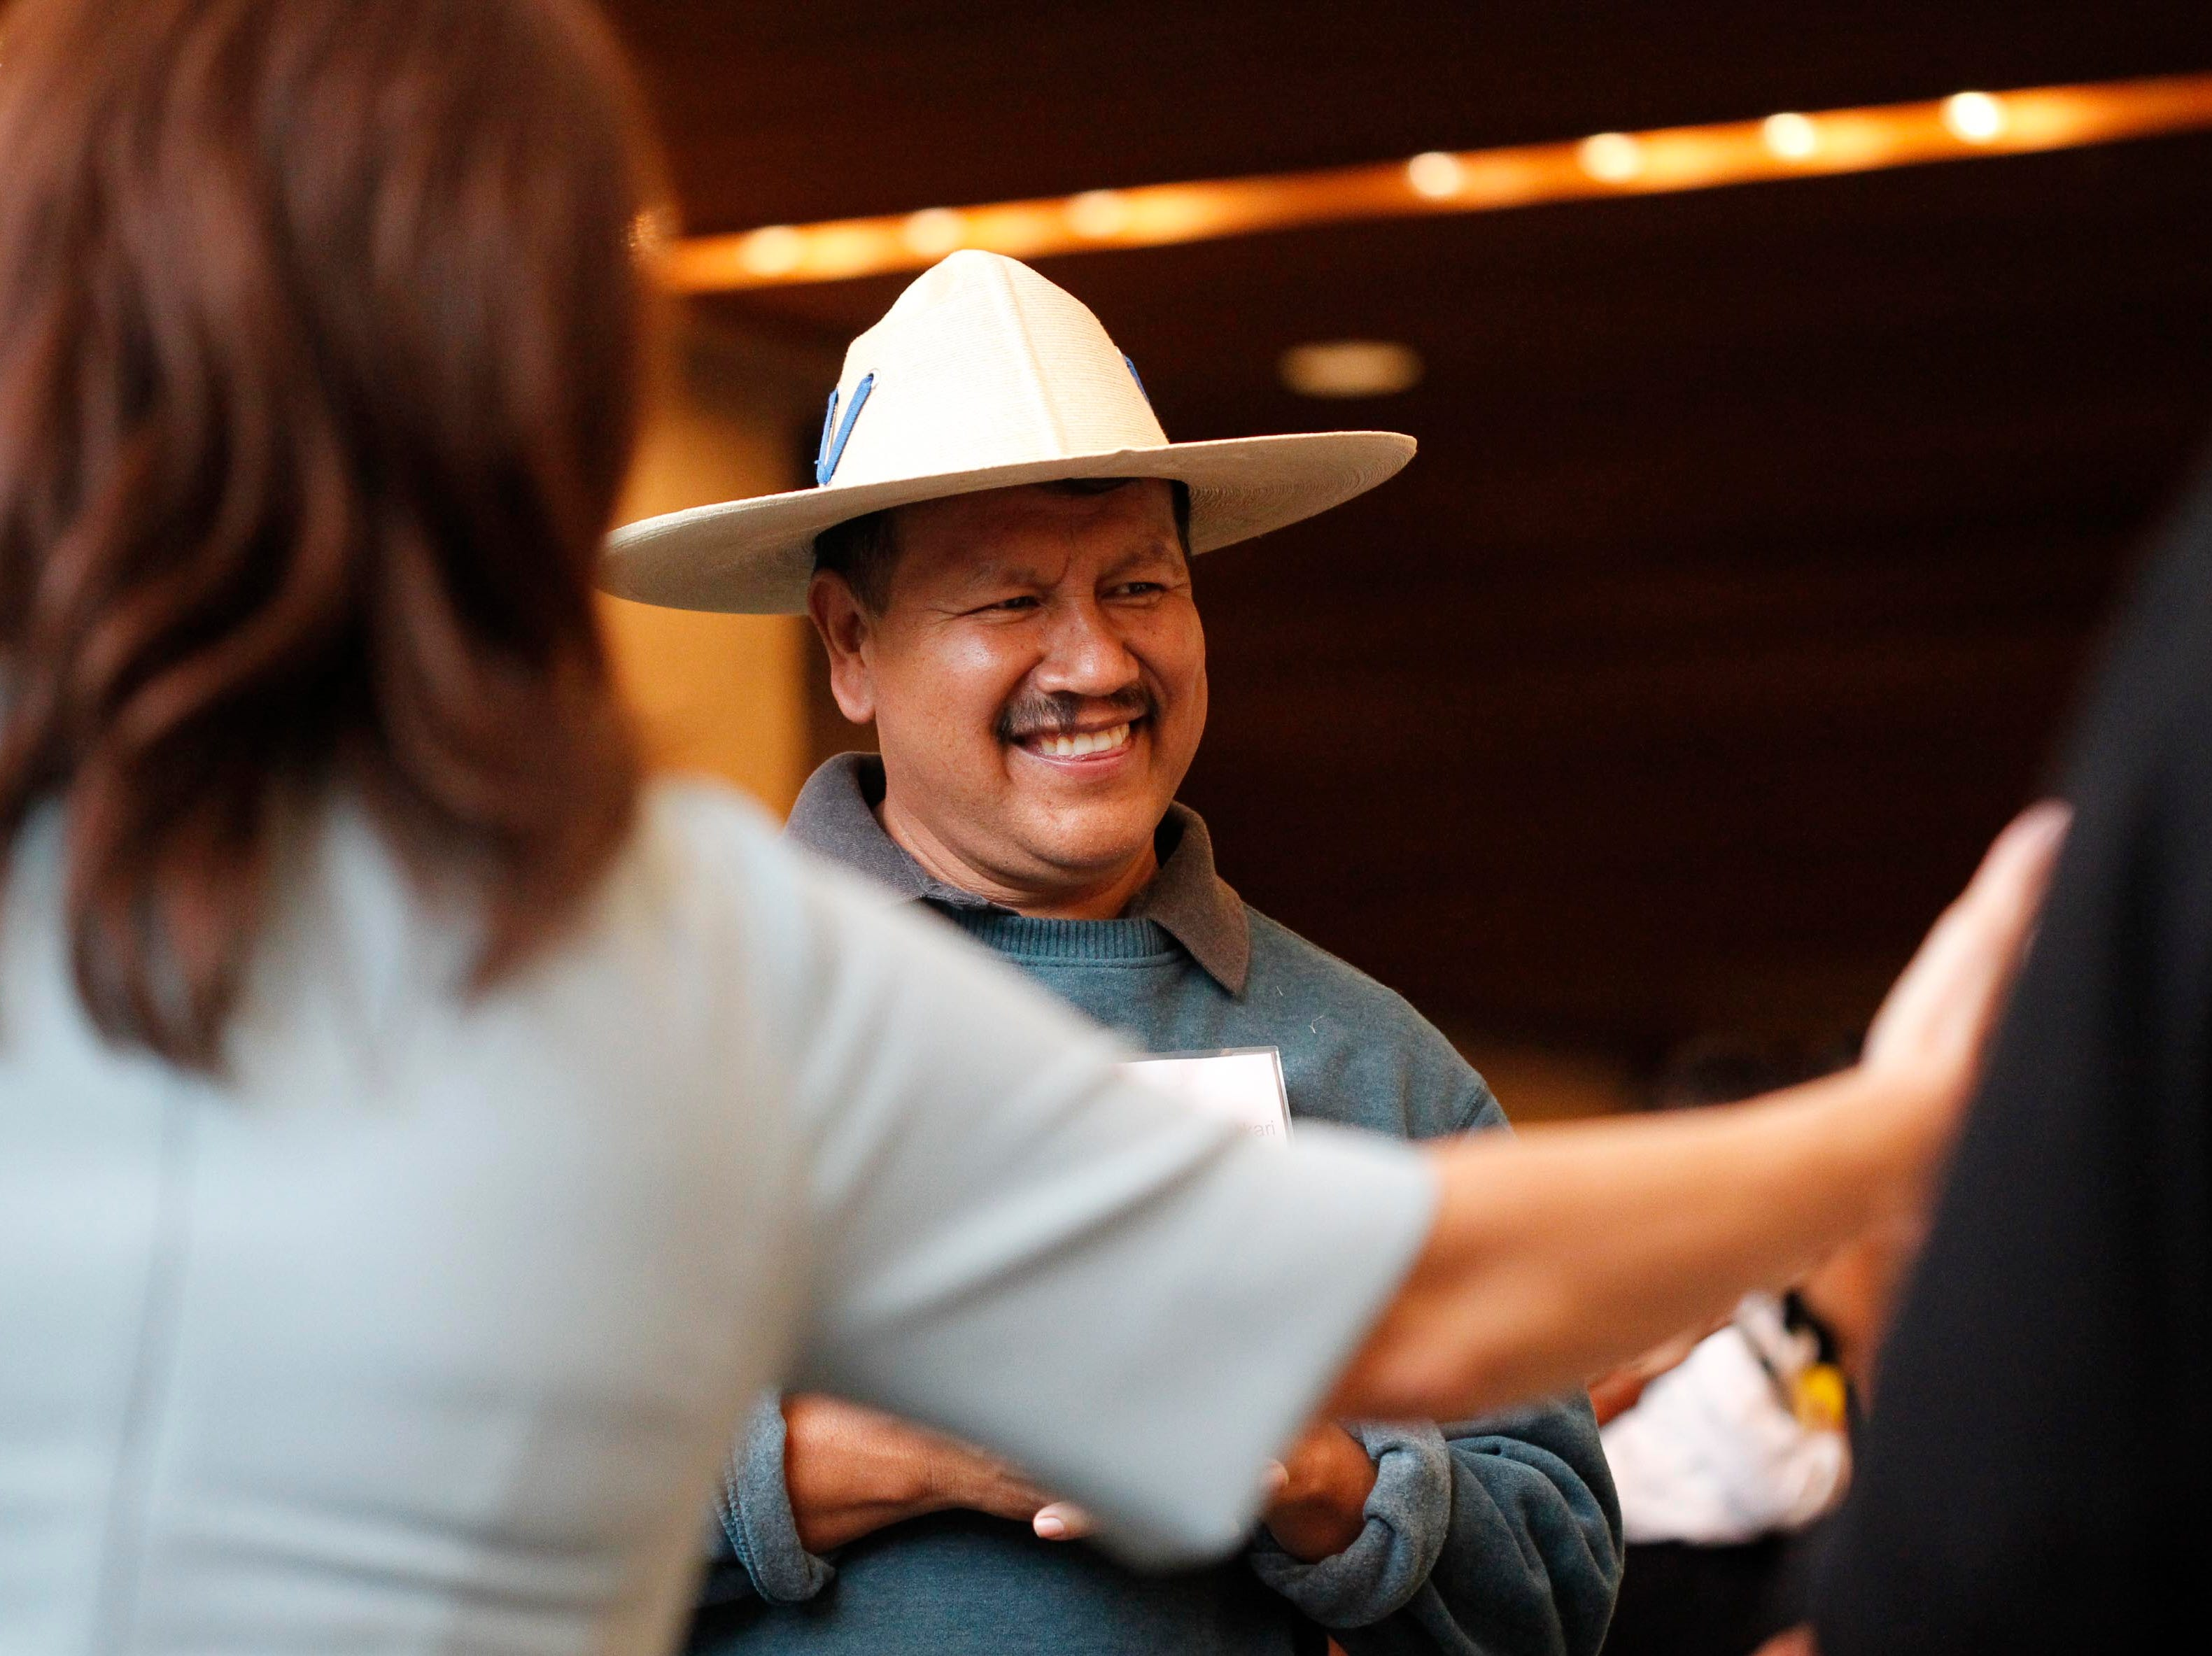 Huichu Huakari of Salinas, center, smiles as he looks on while attendees gander at his work during the 12th annual Noche Bohemia at Sherwood Hall on Saturday, April 27, 2019 in Salinas, Calif.